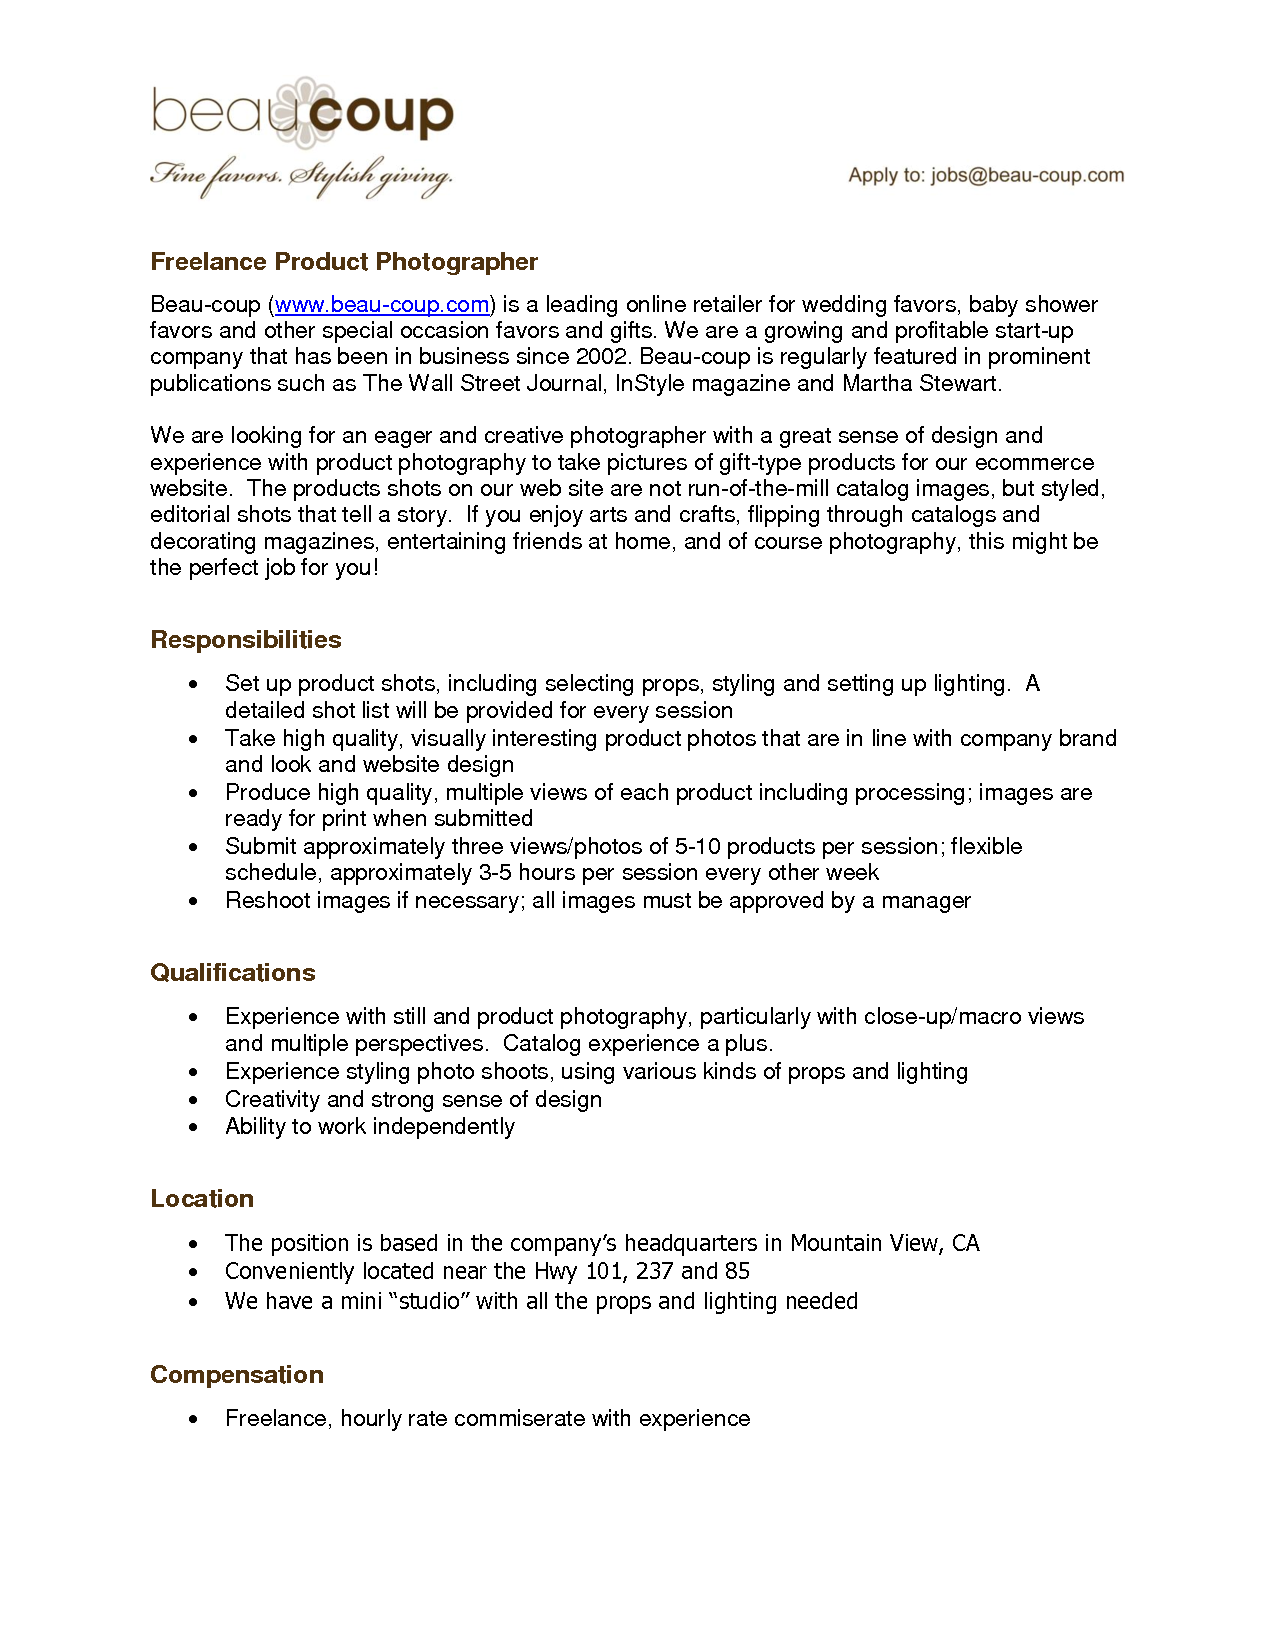 Resume For A Photographer. Freelance Photographer Resume, Freelance ...